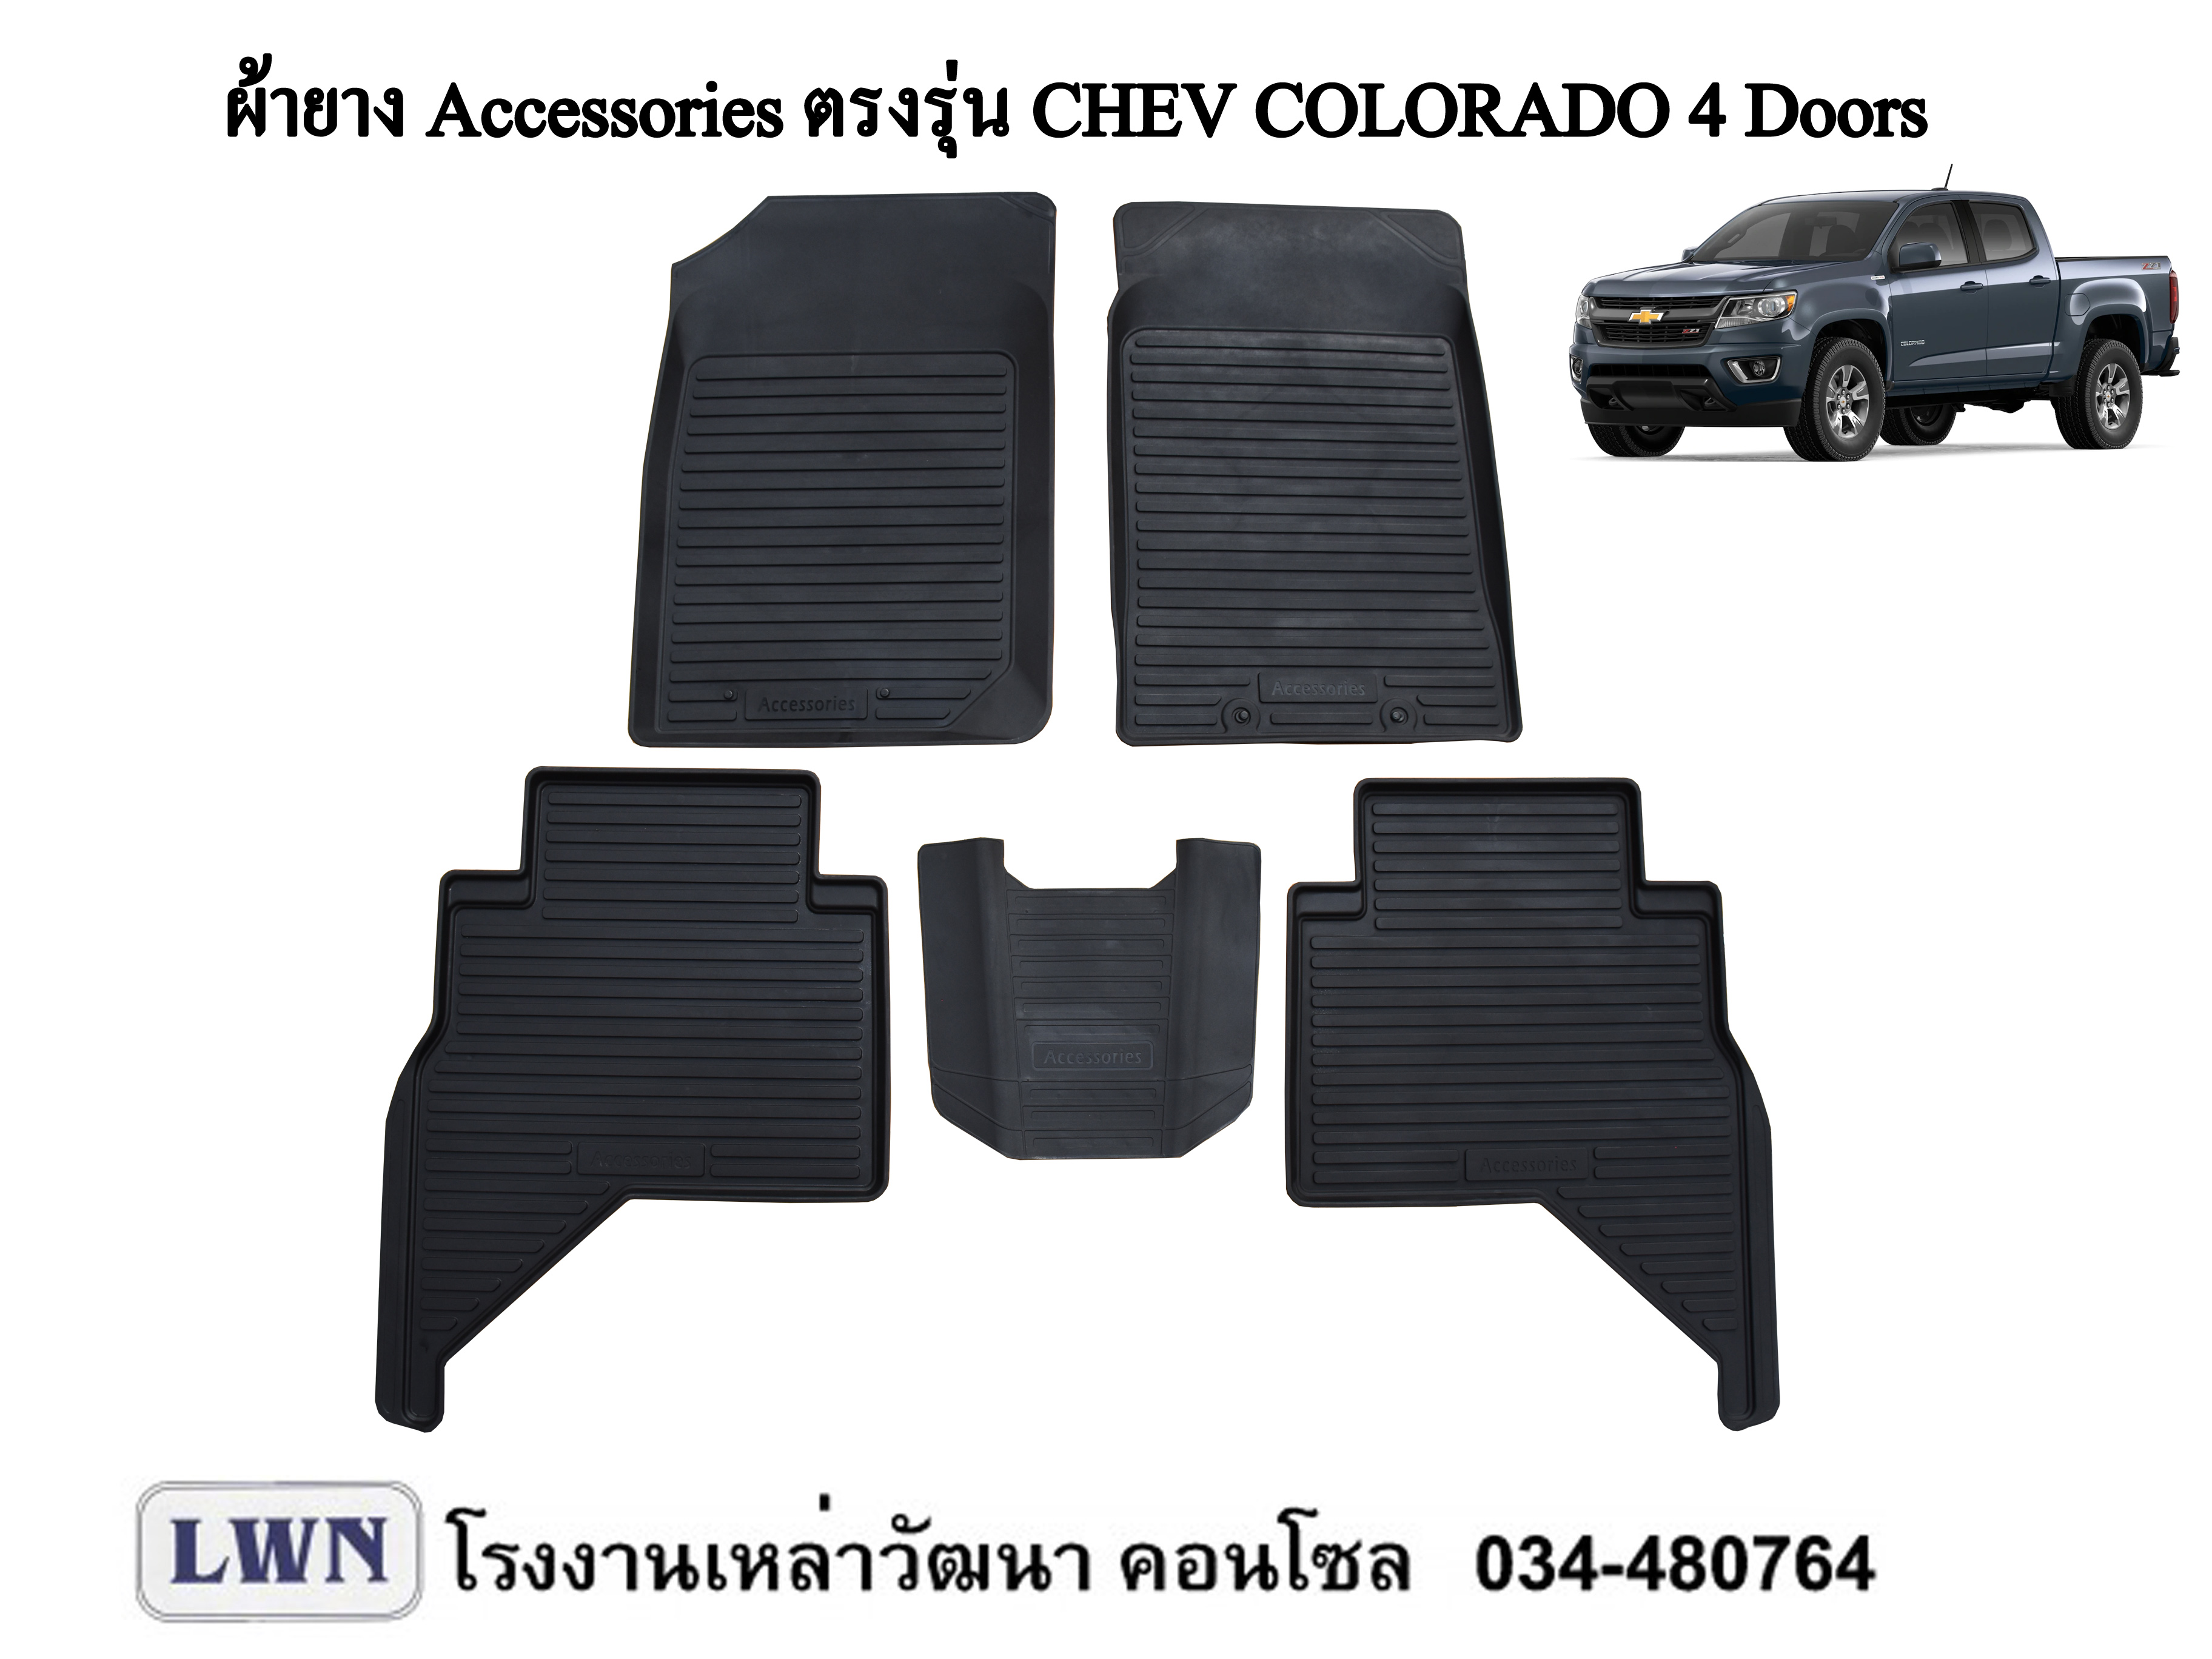 ACC-Chev Colorado Double Cab